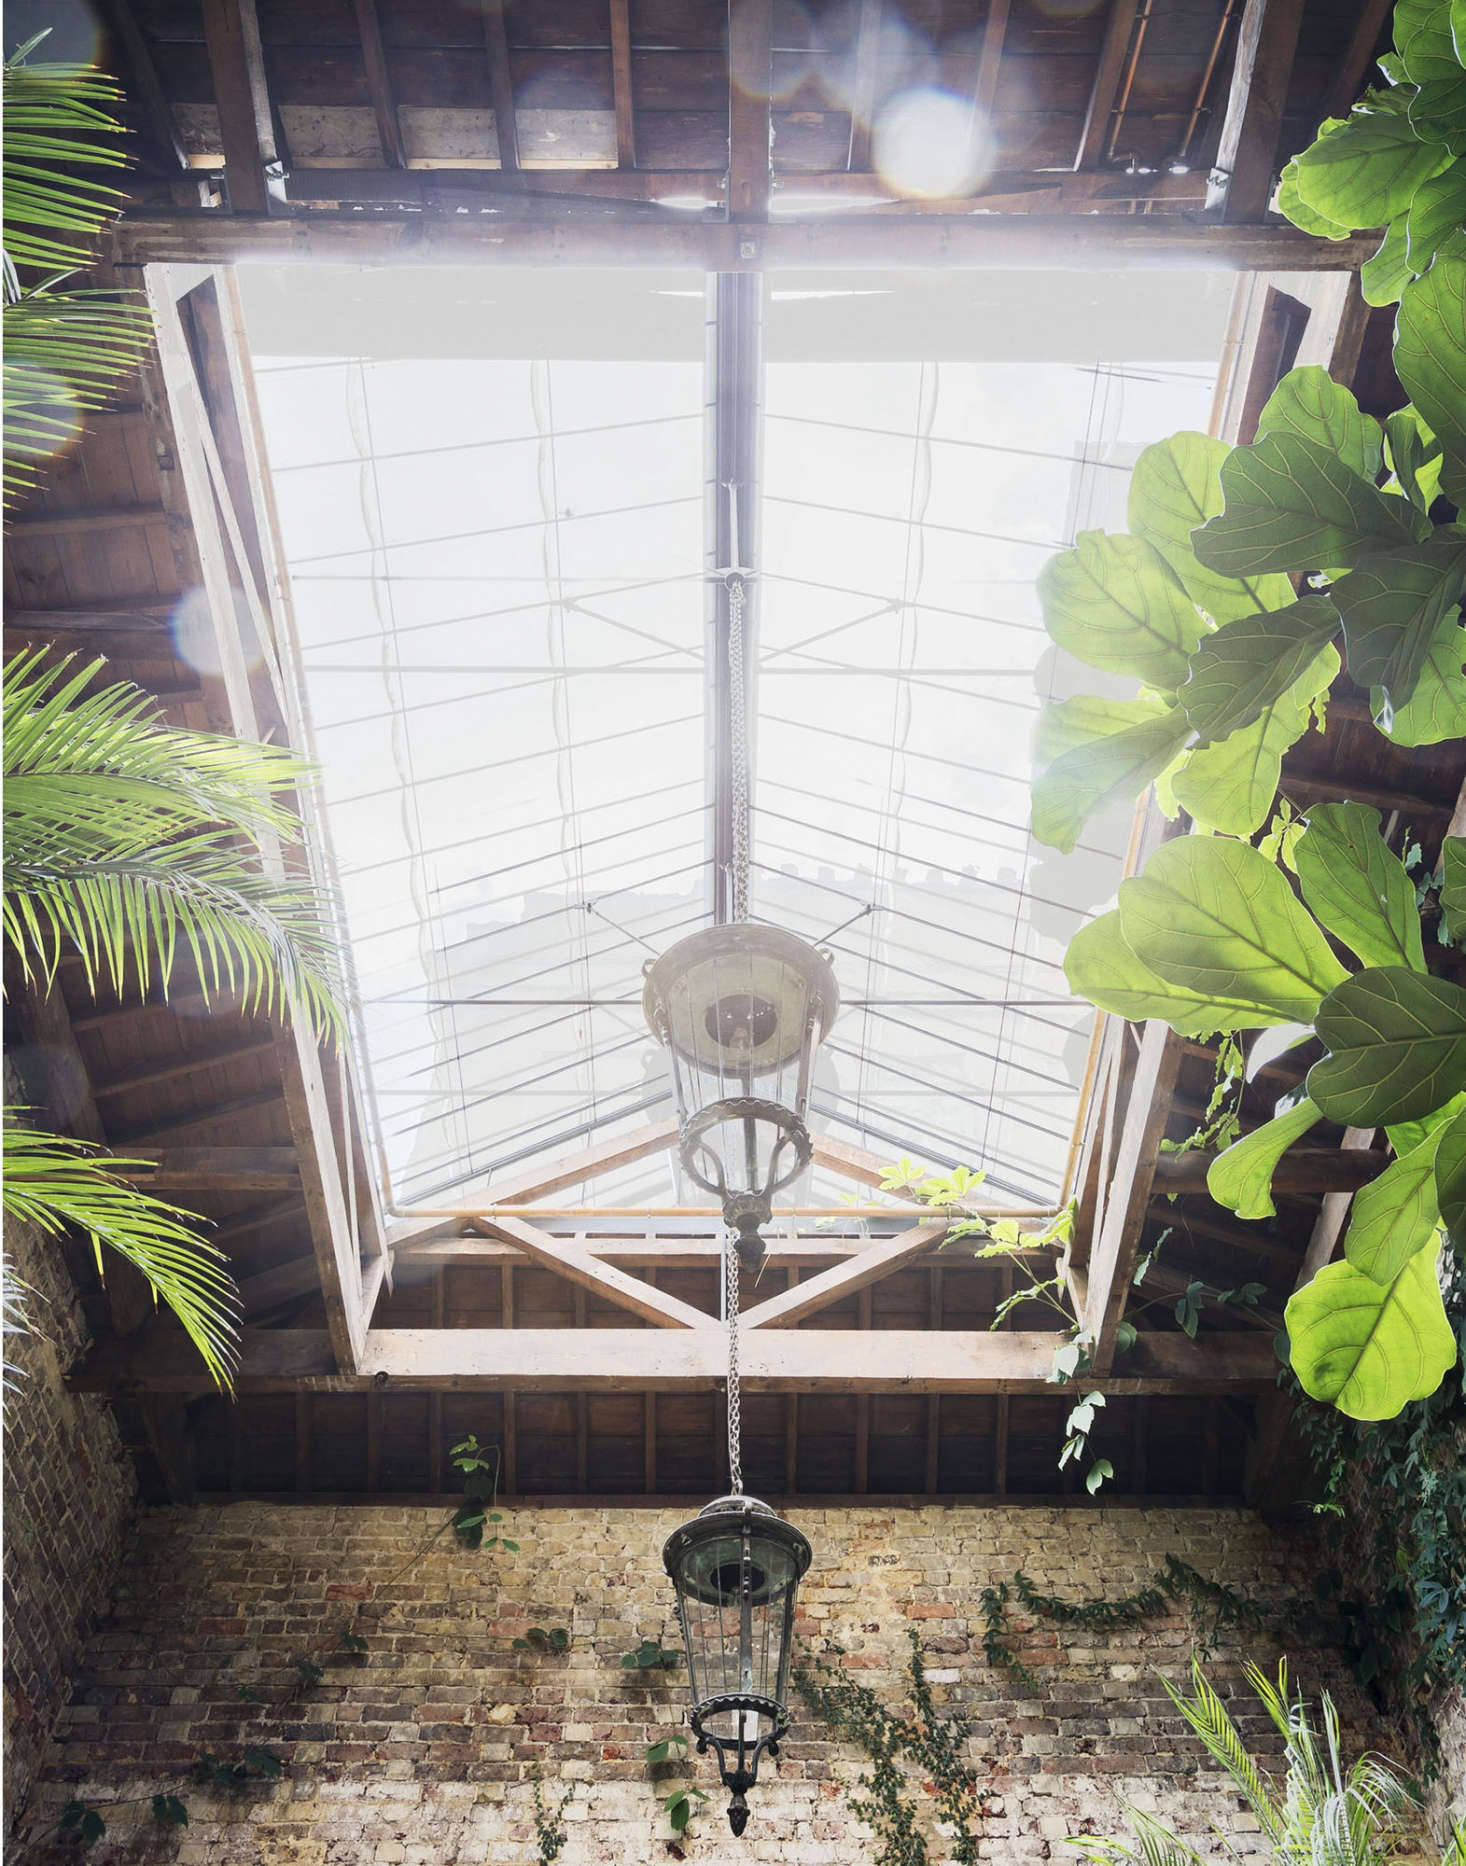 A th-century Venetian hanging lantern (one of a pair) is wired for electricity and hangs from a skylight Van Duysen designed to look like a throwback to a Victorian greenhouse. Exposed copper heating pipes glow in the light on sunny days.